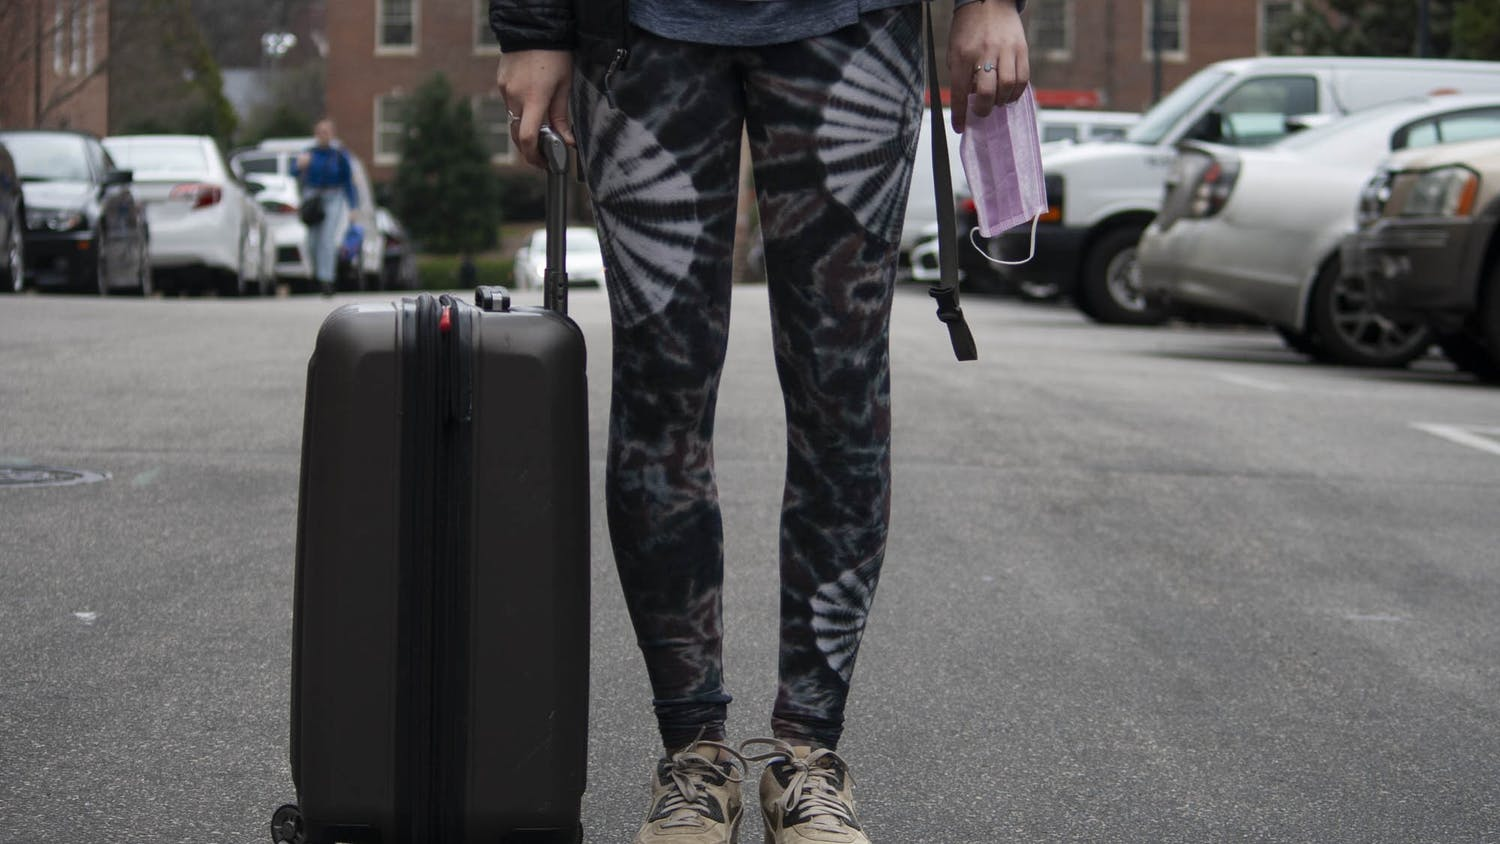 DTH Photo Illustration. A UNC student holds a suitcase and a surgical mask on campus on Tuesday, March 3, 2020. The coronavirus has cancelled various study abroad programs.